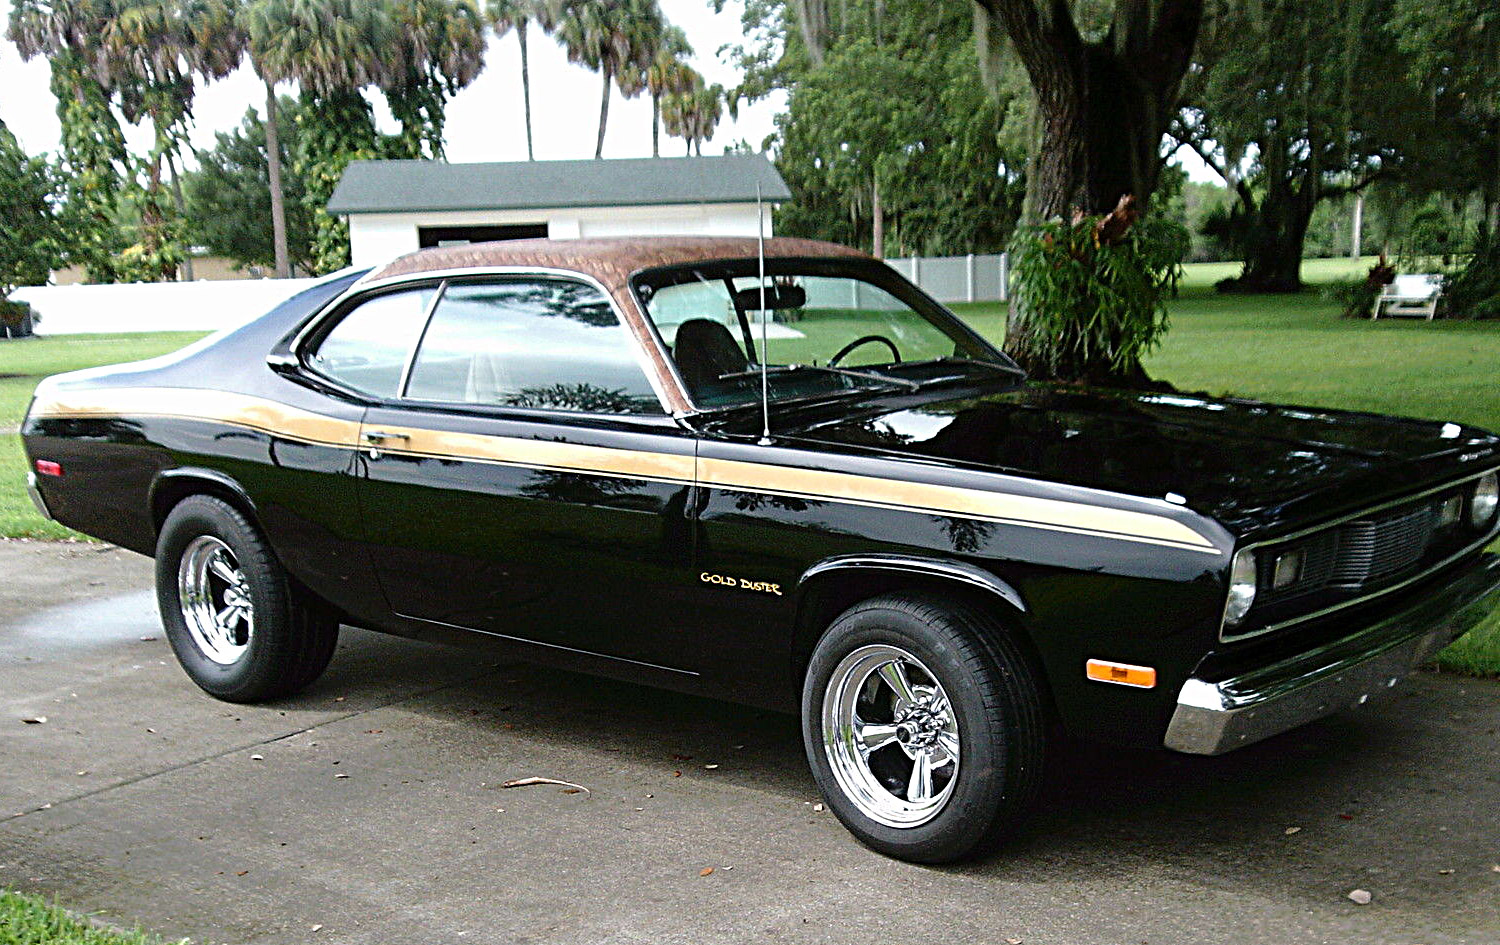 1972 Plymouth Duster-124363463